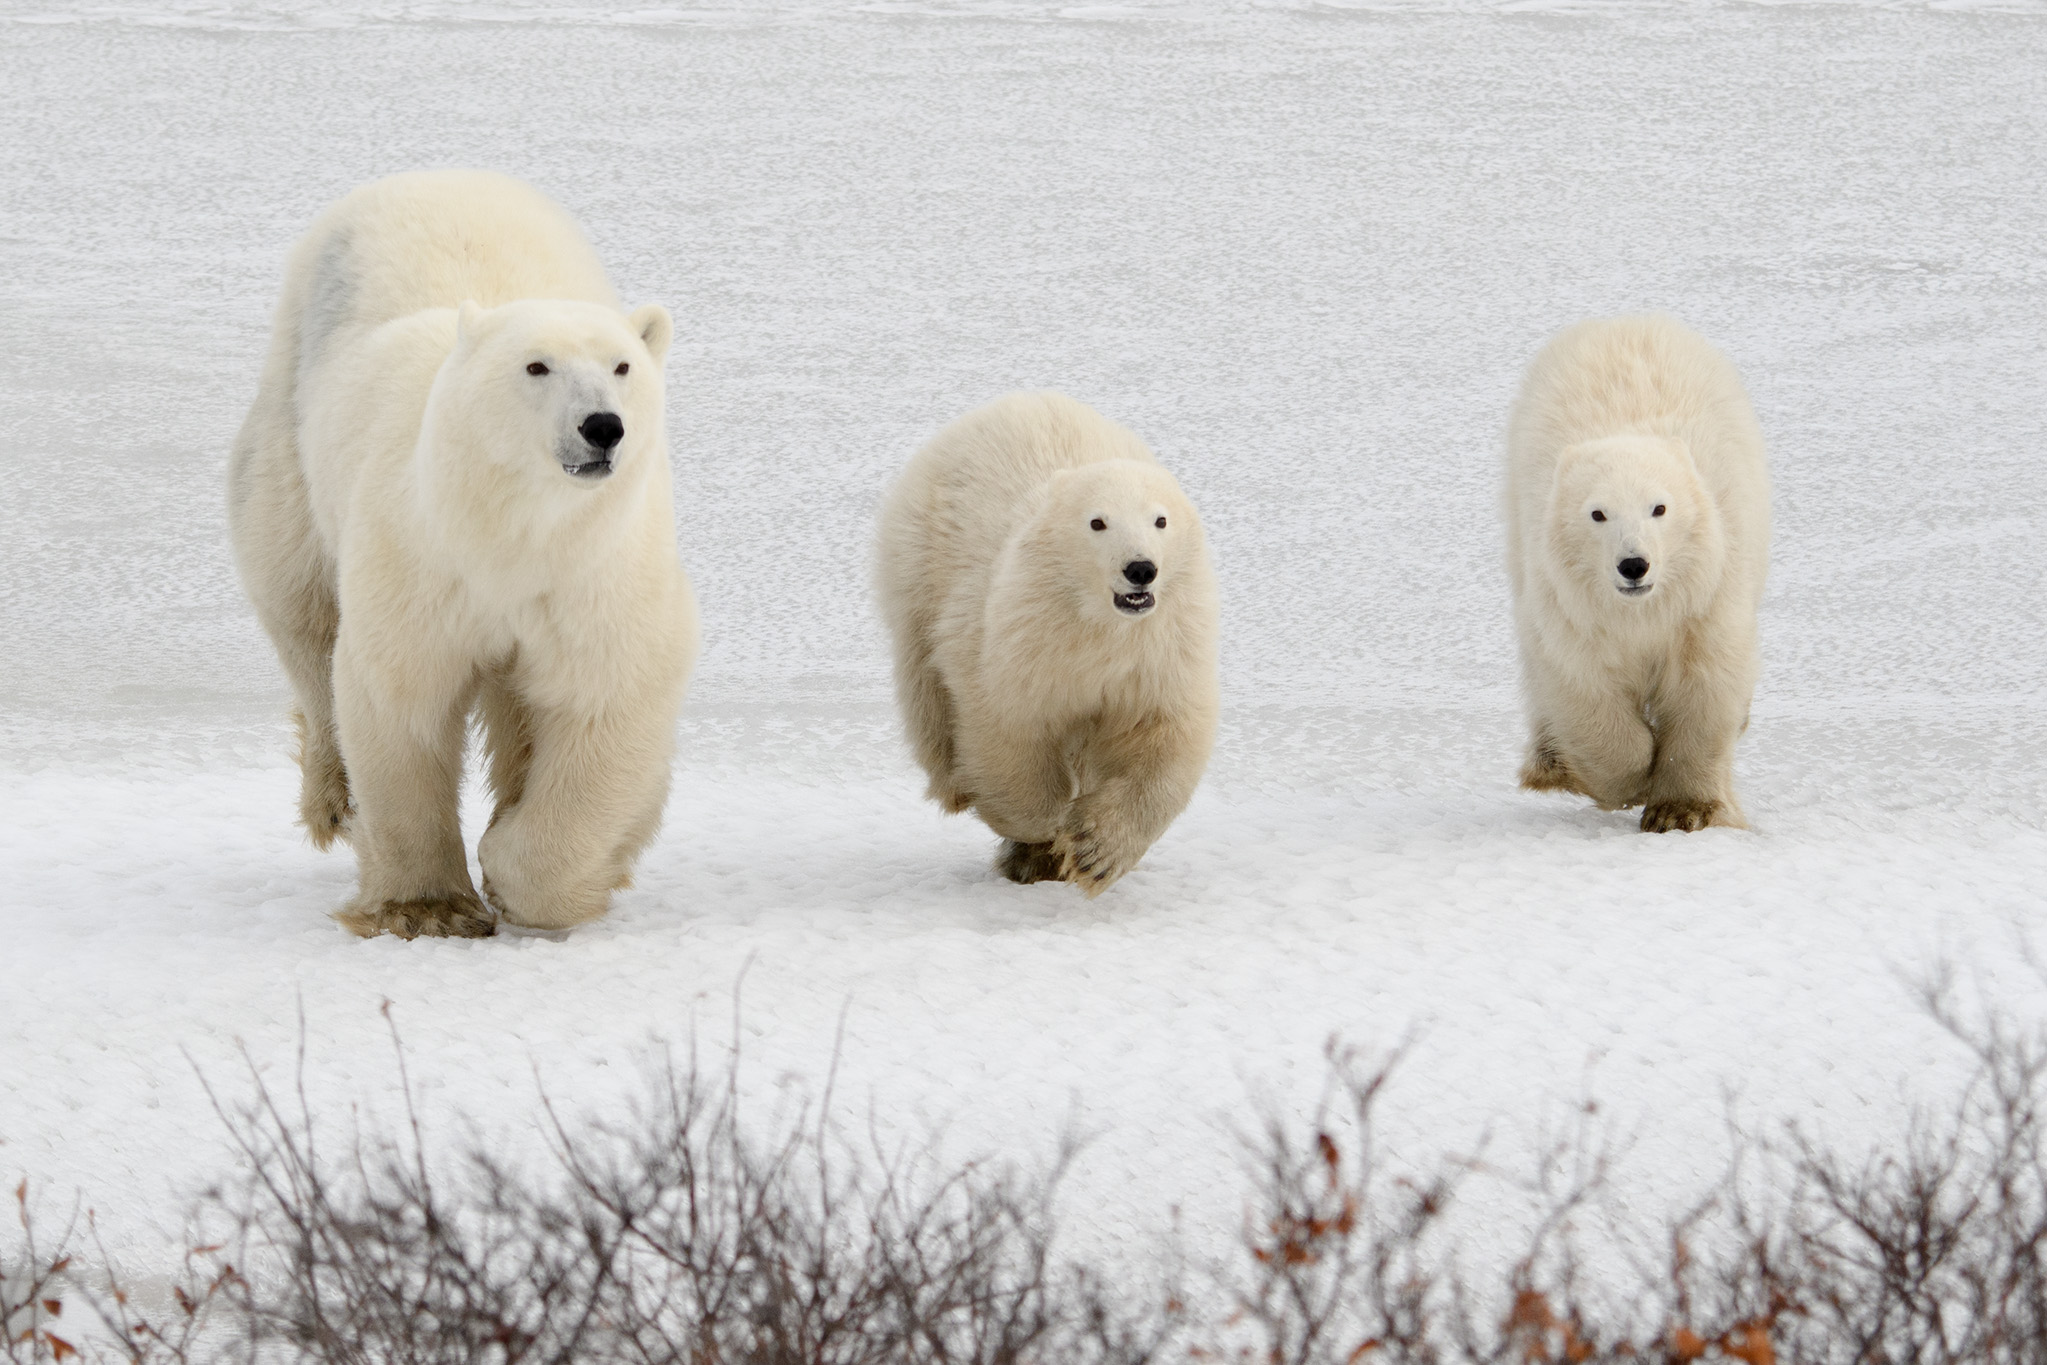 The family ran towards our tundra vehicle at top speed